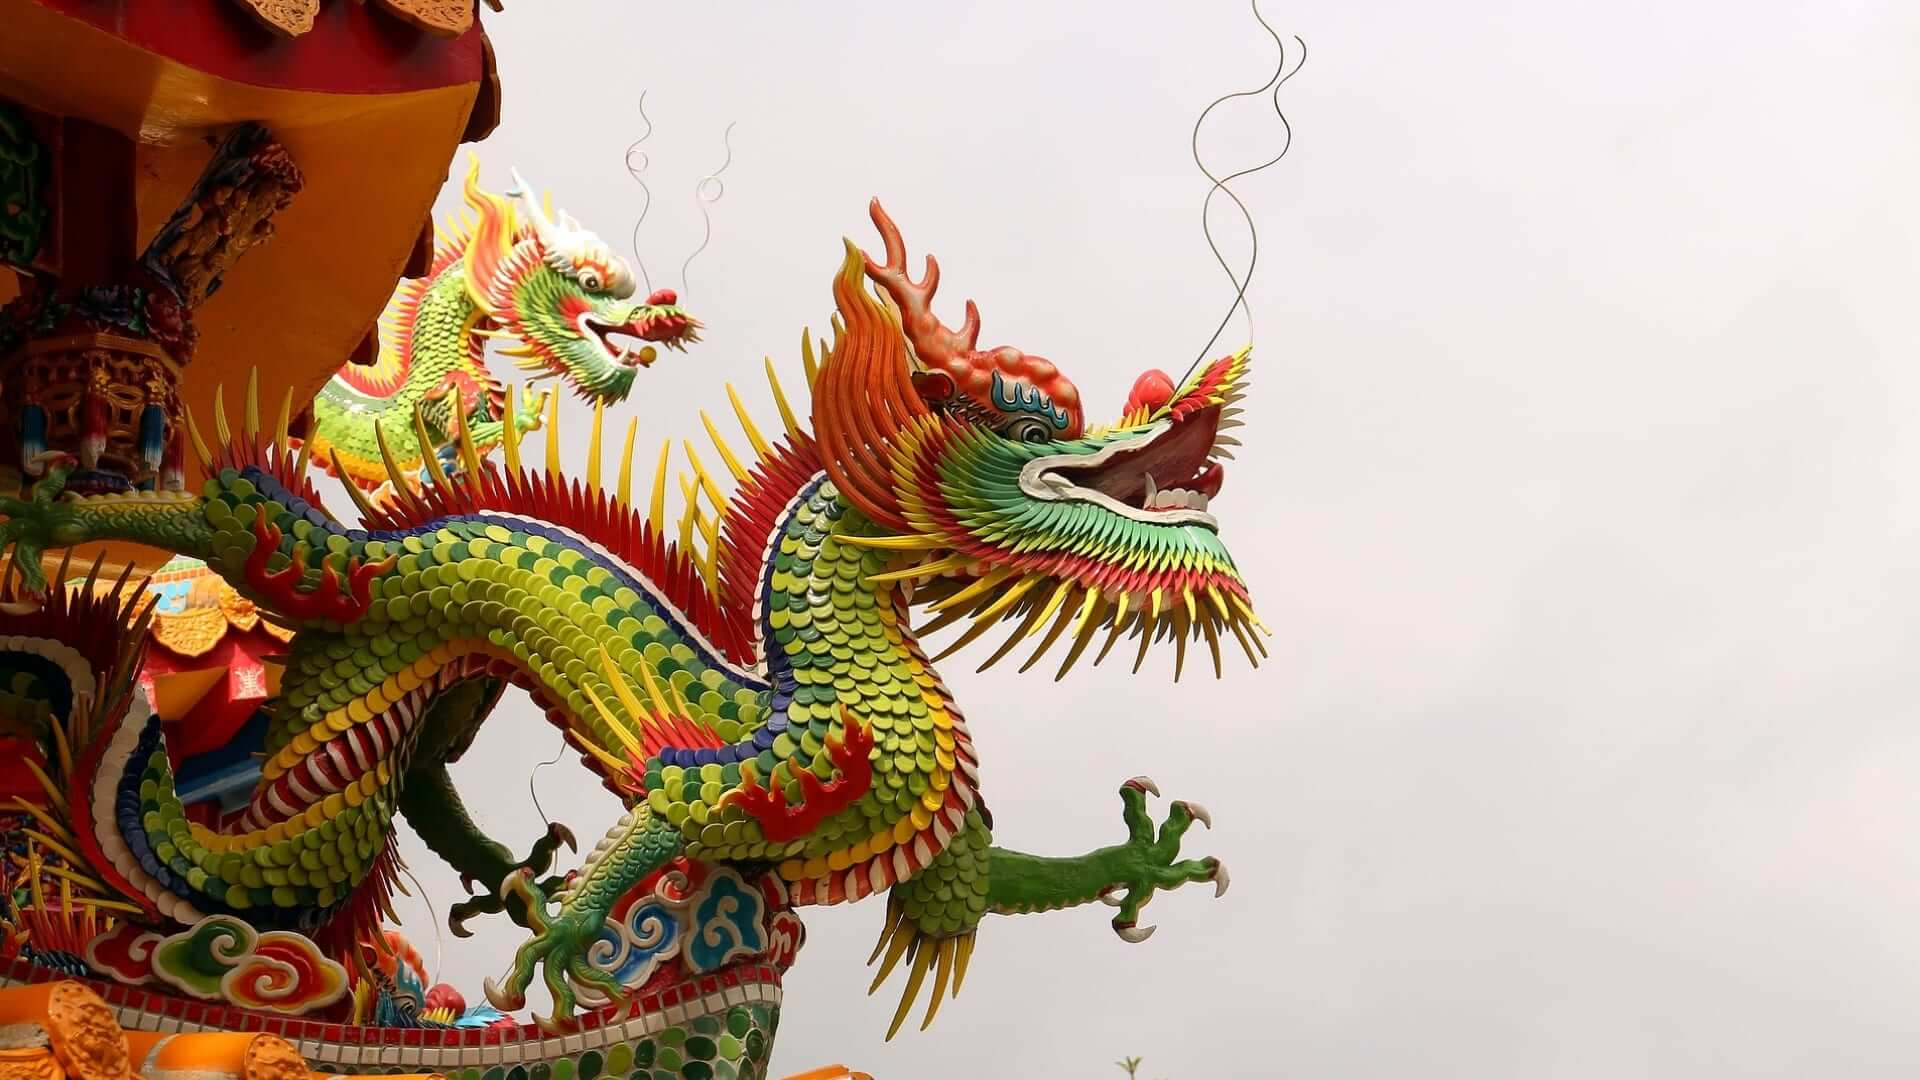 A colorful dragon as decoration of a building in Taiwan.